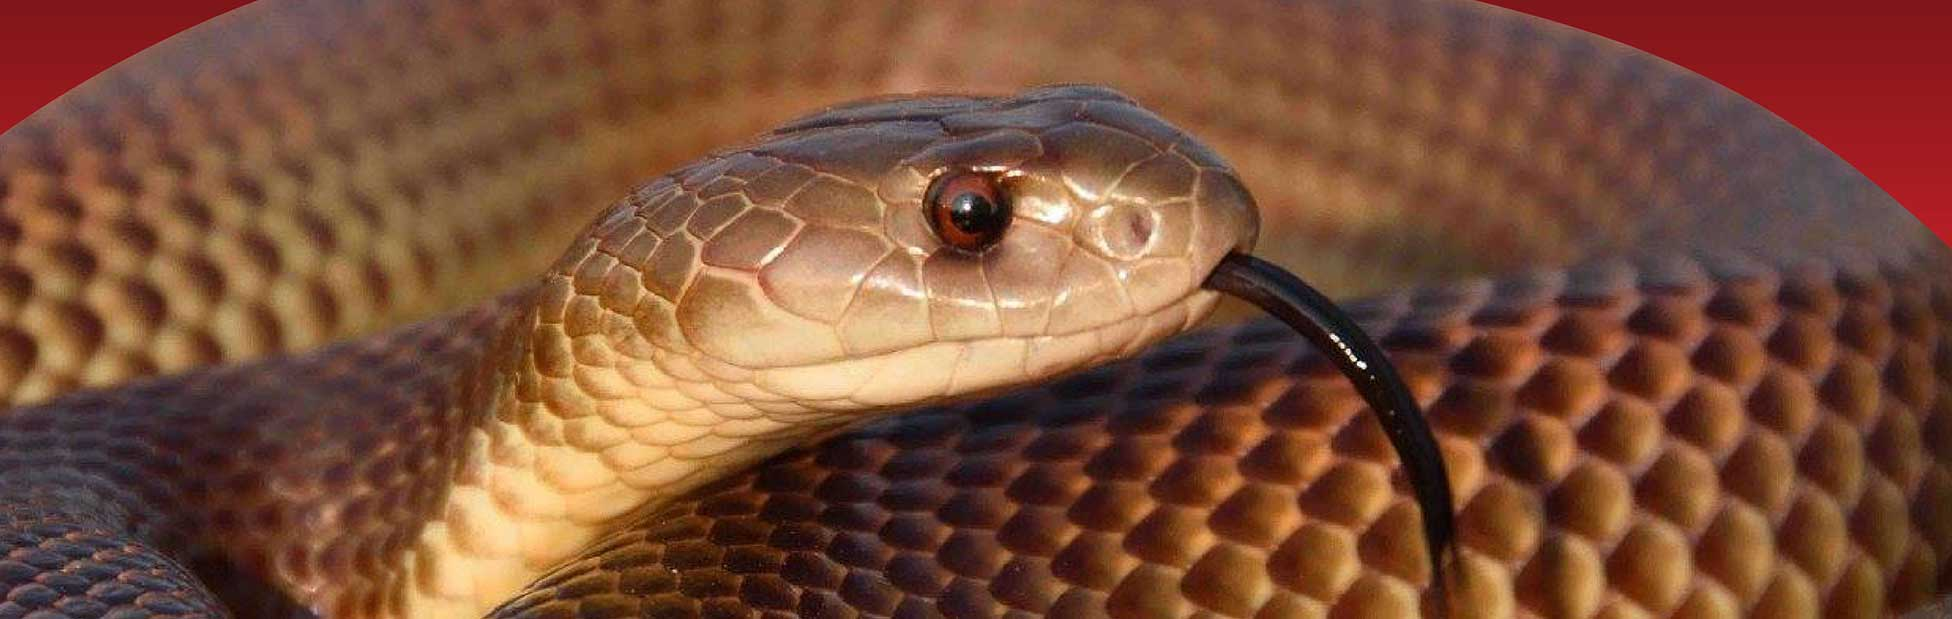 Close up of brown snake with tongue out